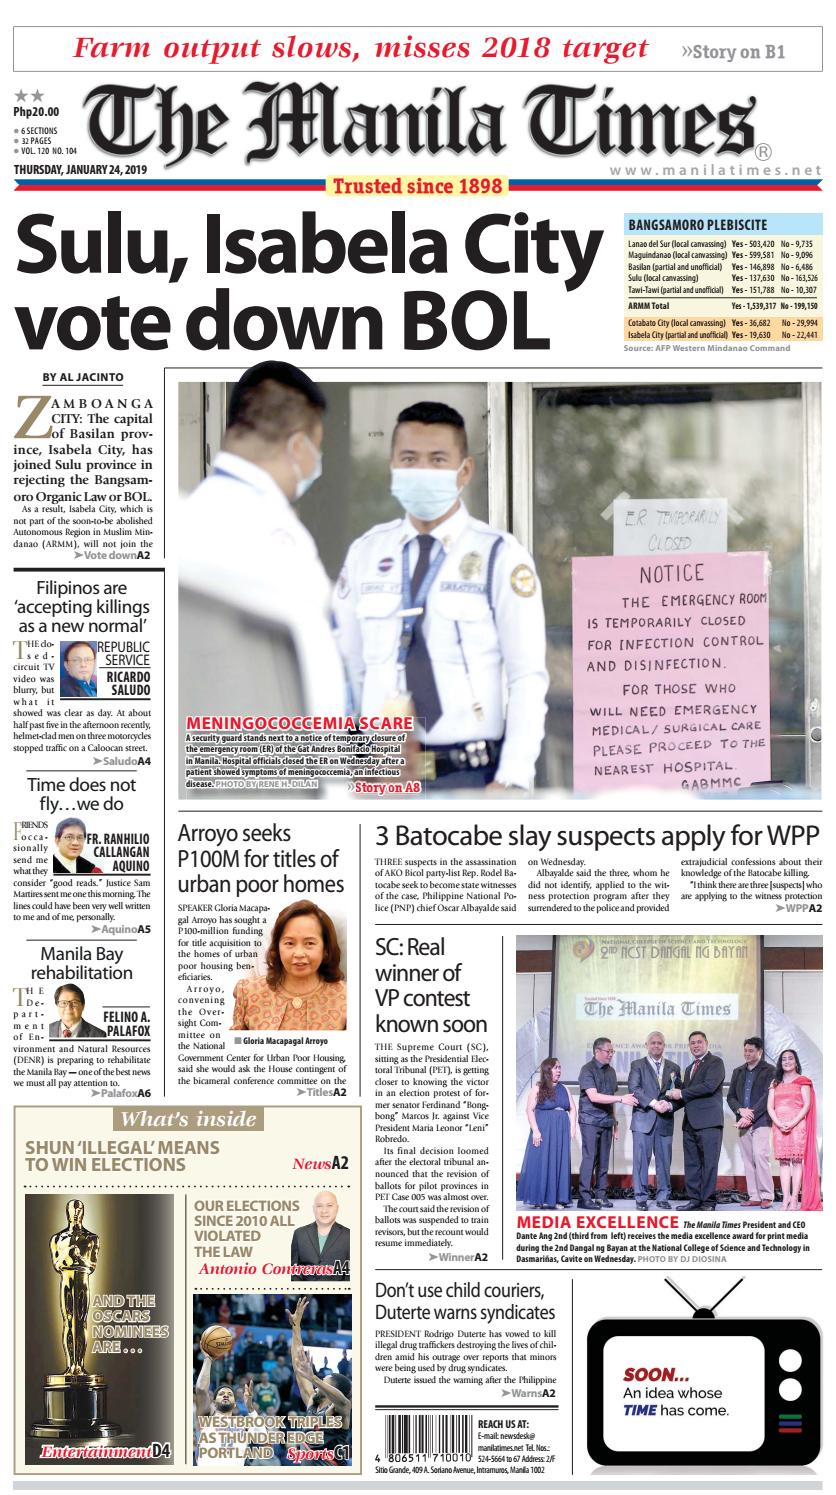 THE MANILA TIMES | JANUARY 24, 2019 by The Manila Times - issuu